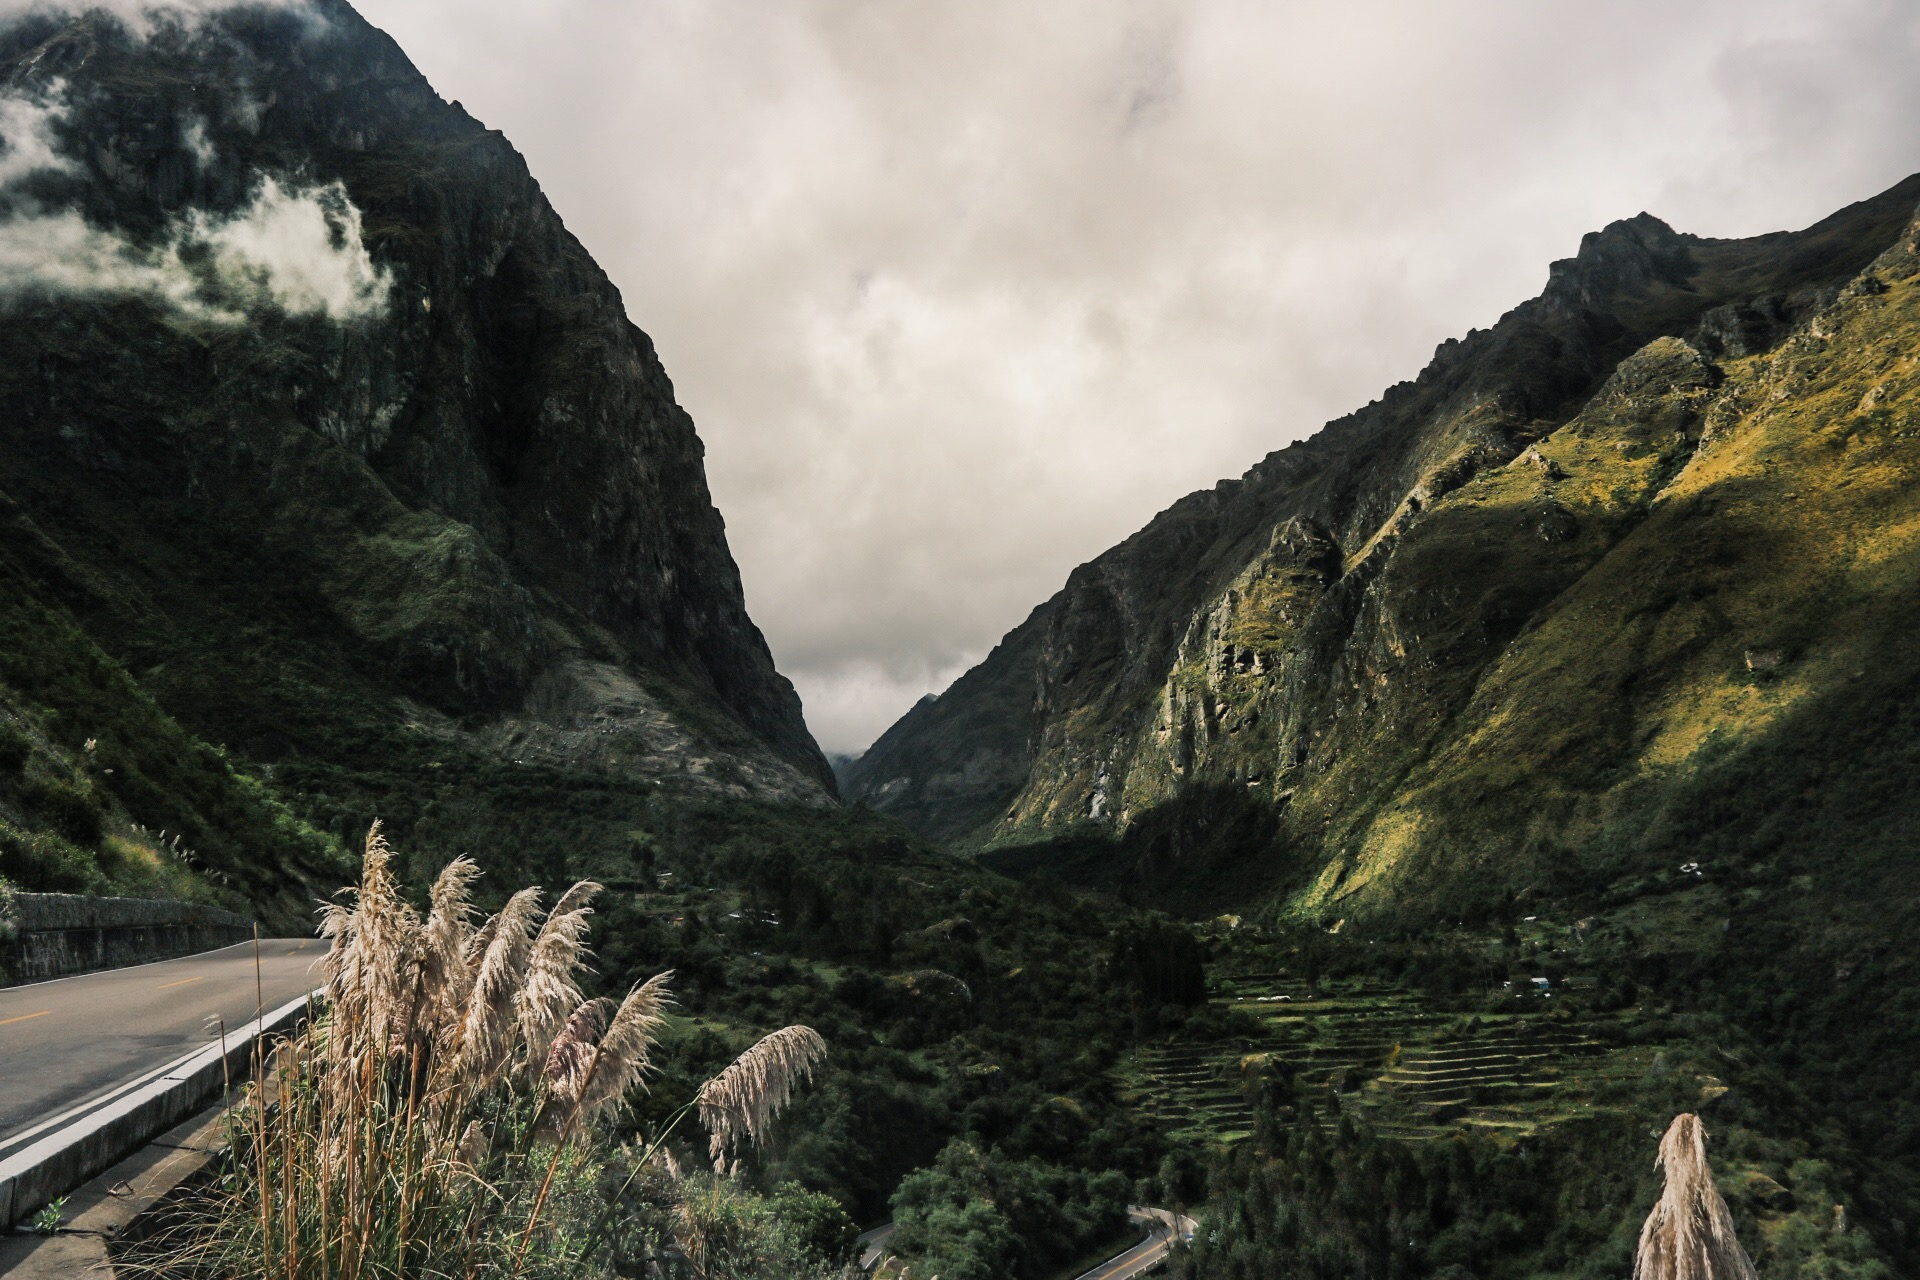 Looking back at the road through the Sacred Valley